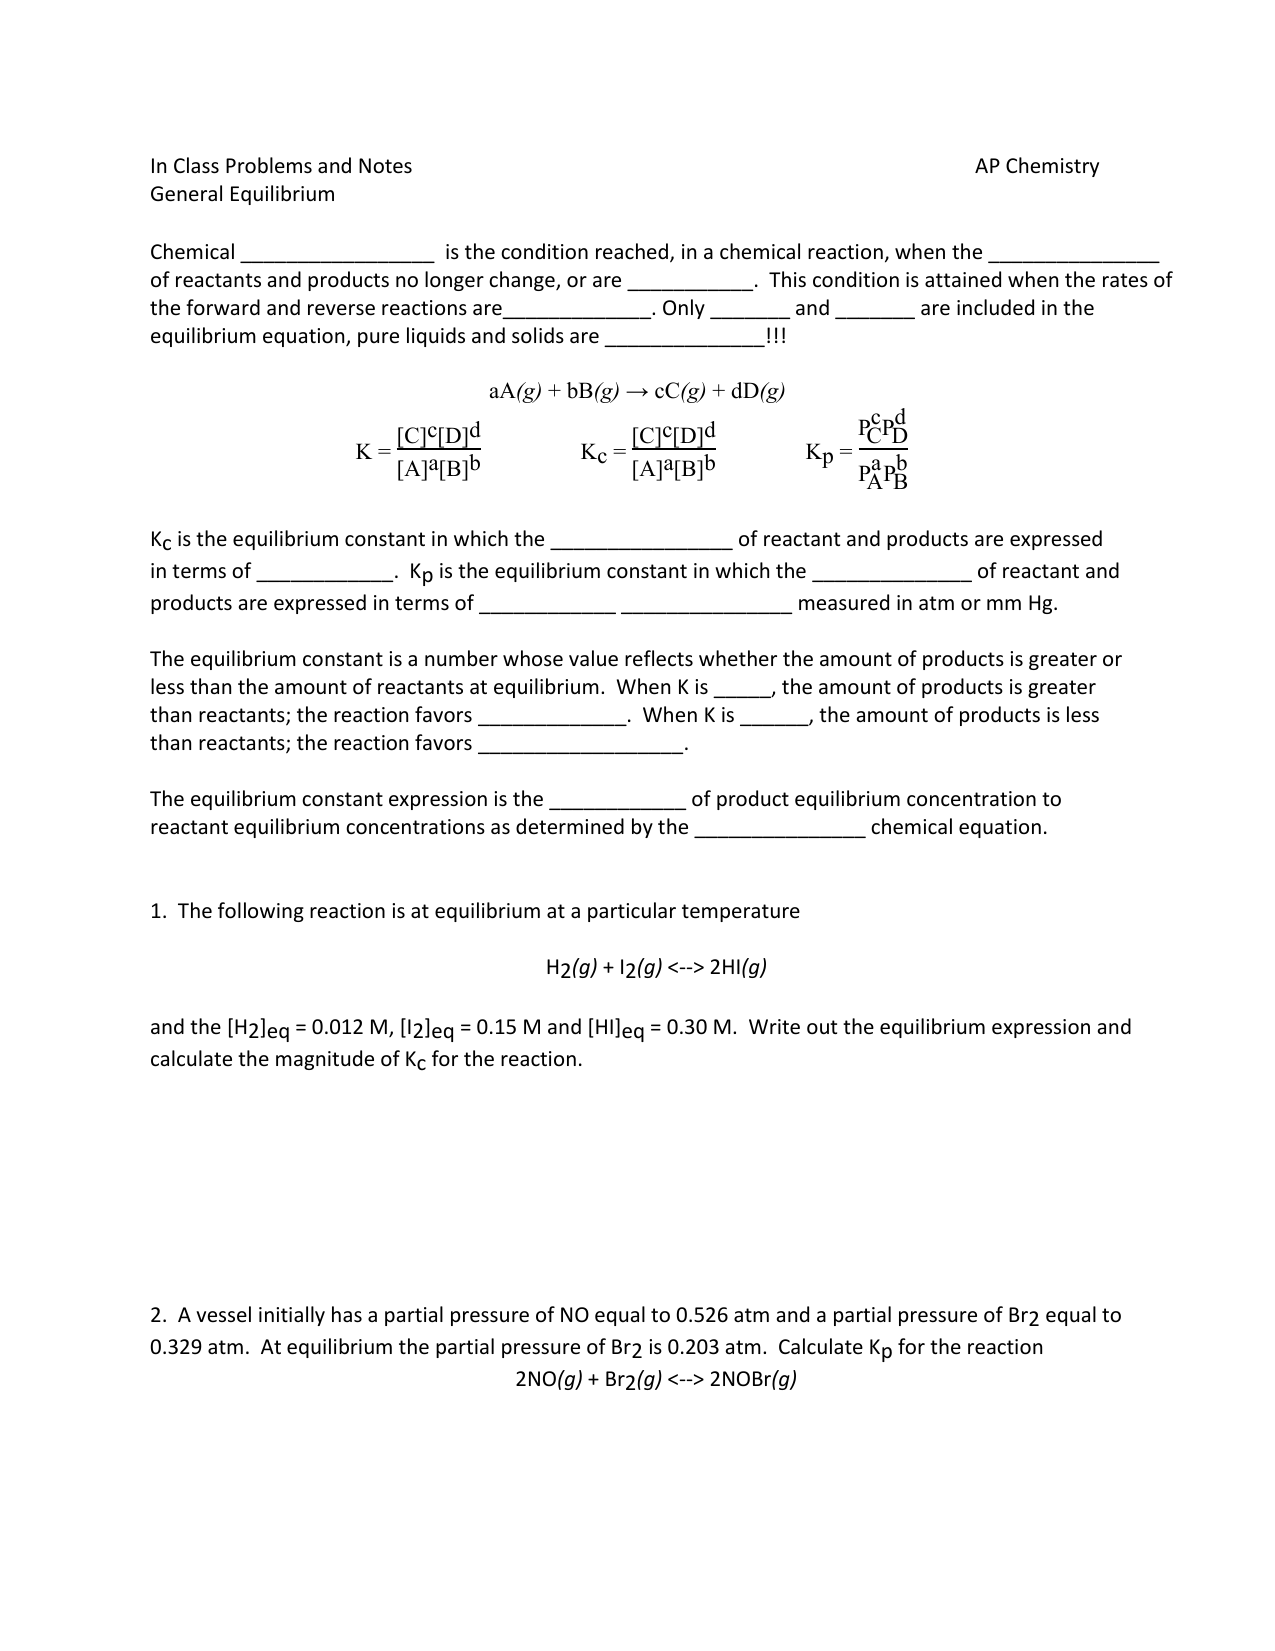 In Class Problems and Notes AP Chemistry General Equilibrium